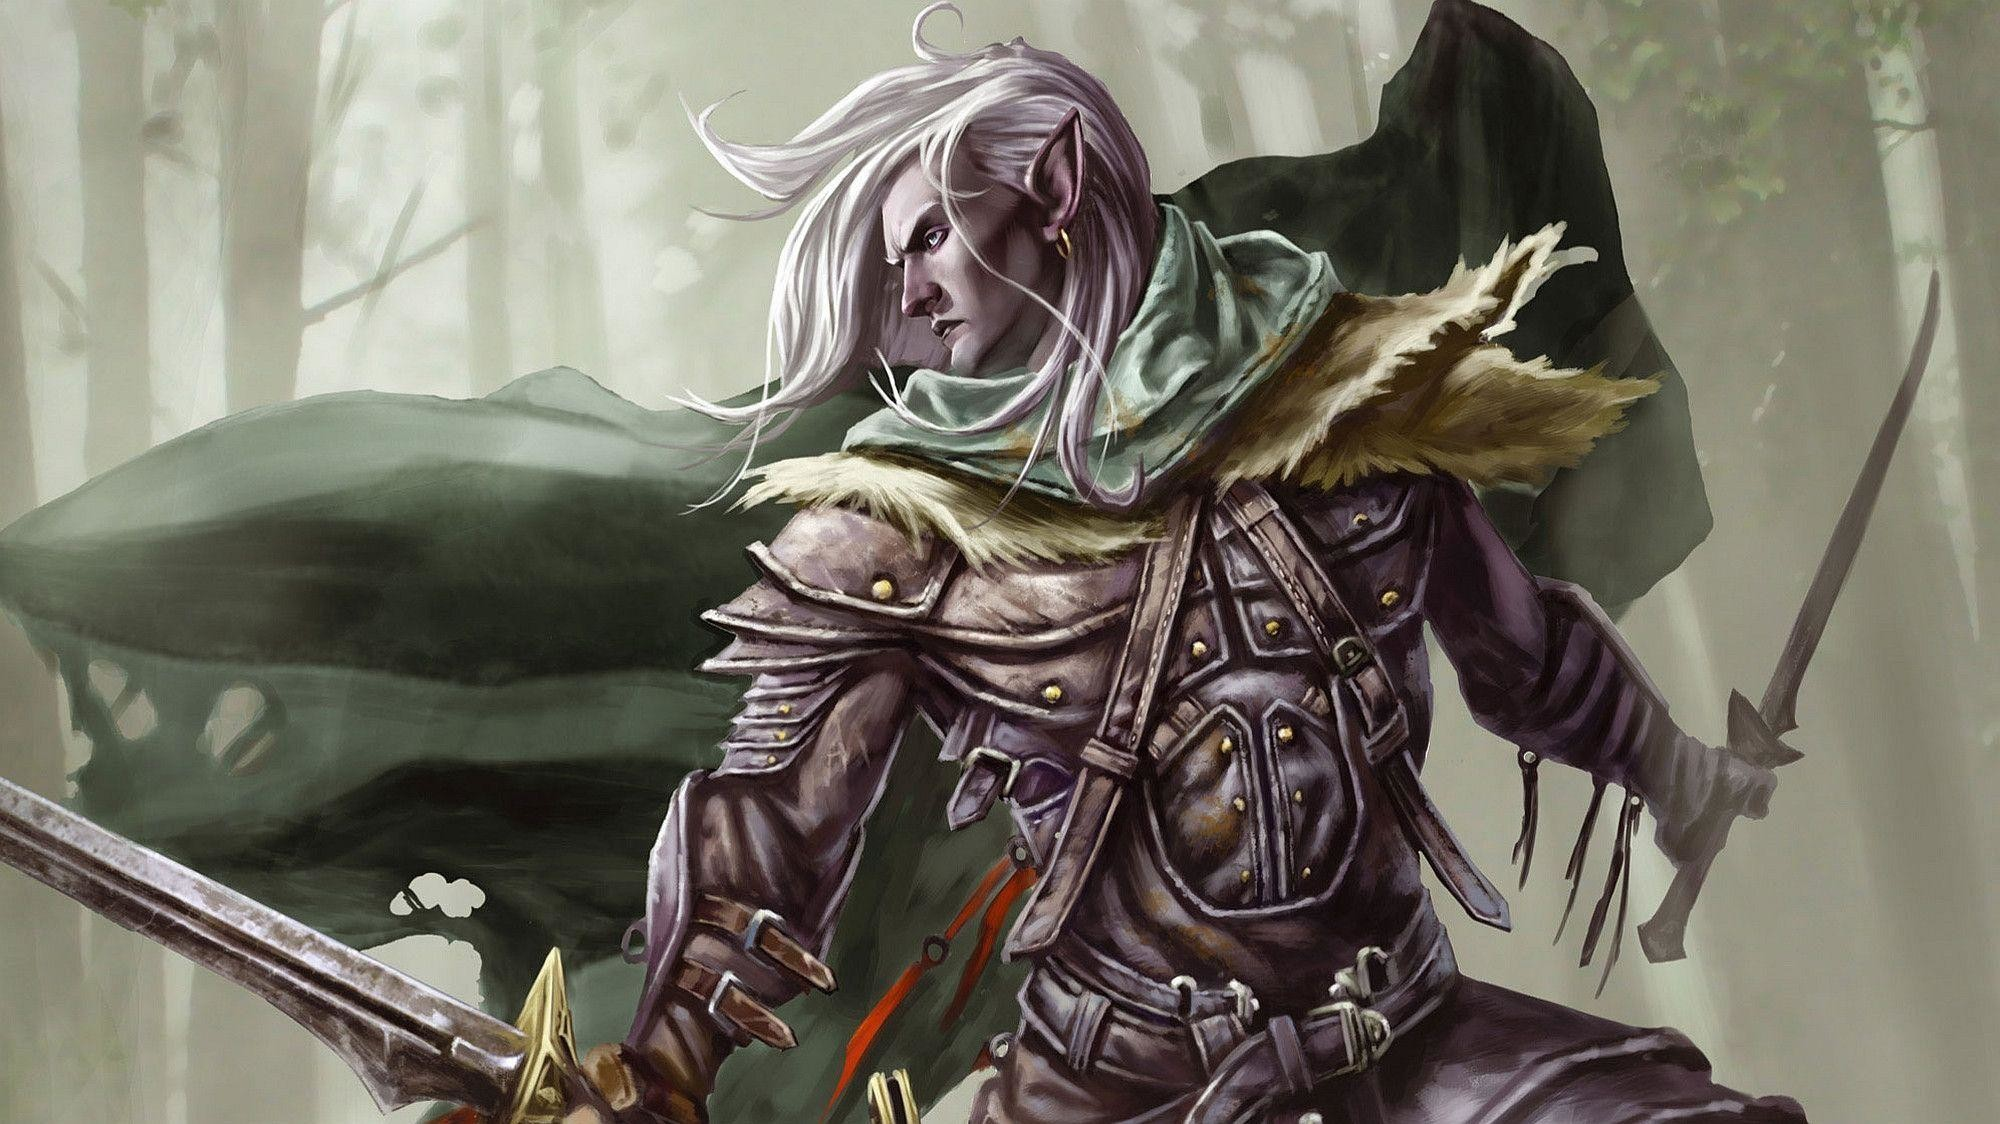 2000x1124 1 The Legend Of Drizzt Wallpapers | The Legend Of Drizzt Backgrounds